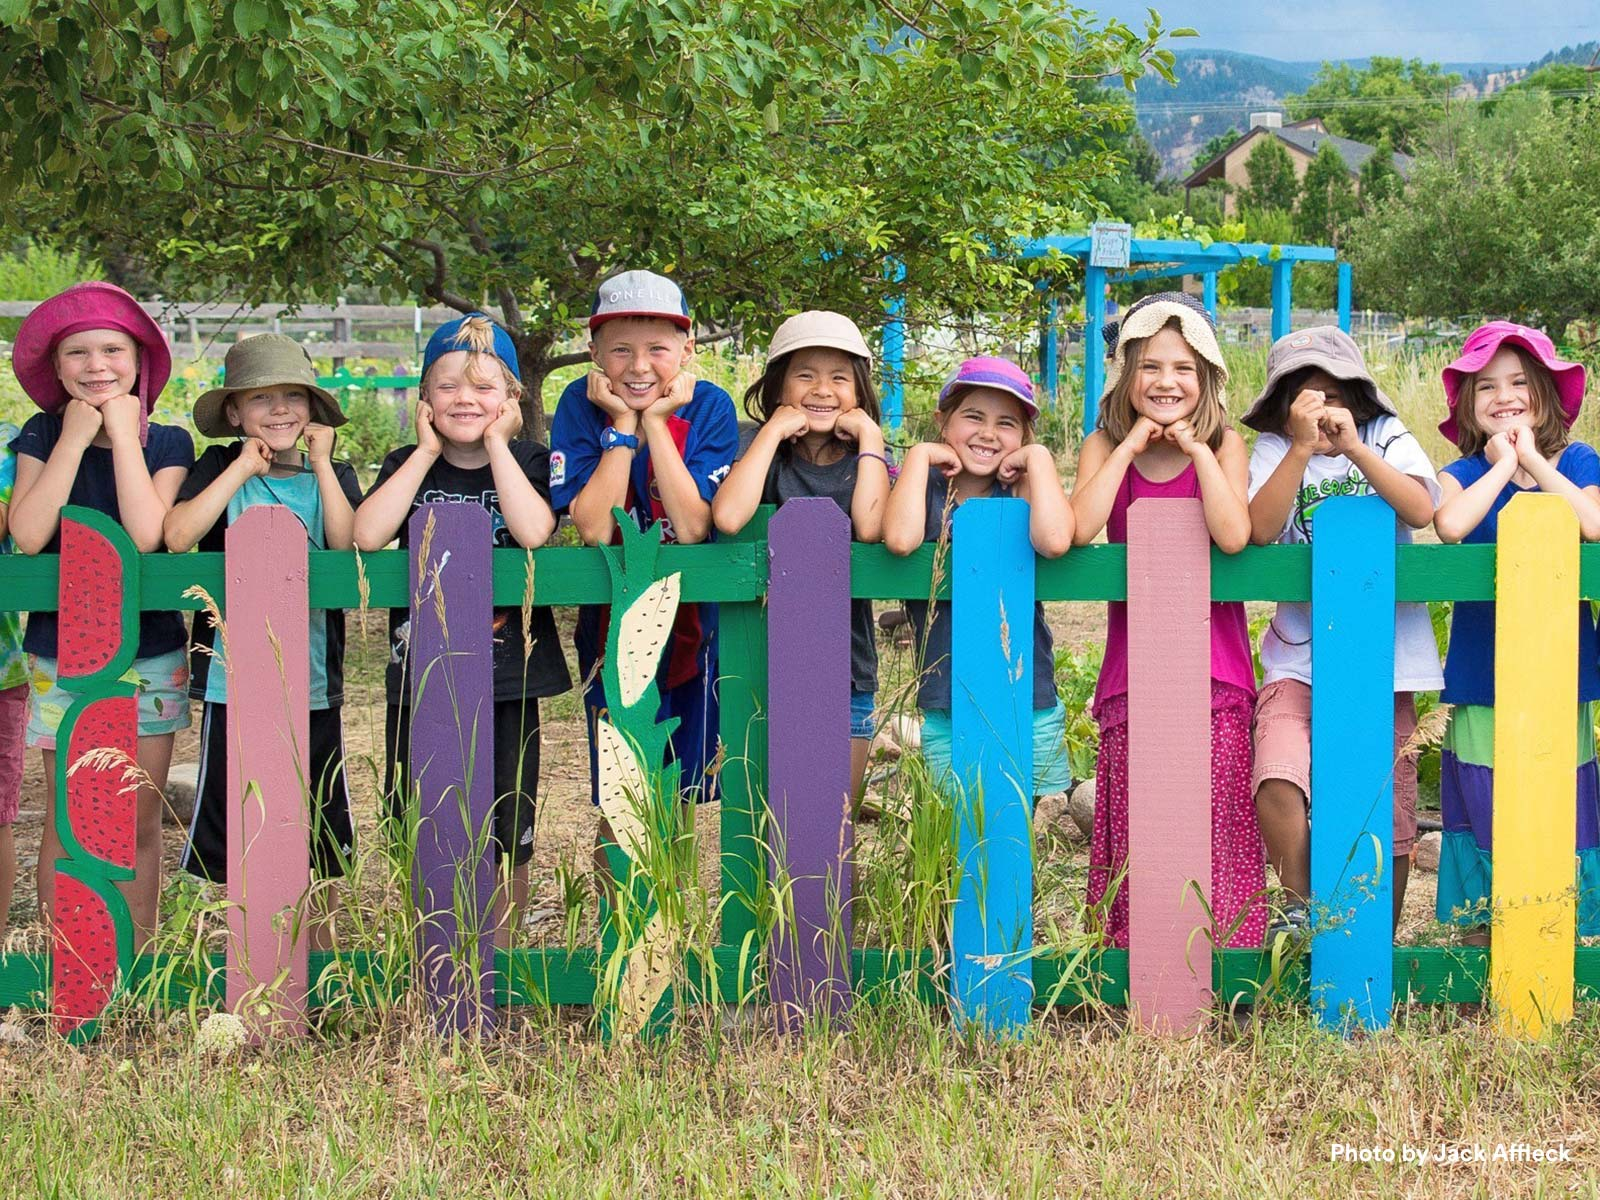 Children smiling leaning on a colorful painted fence in front of a playground